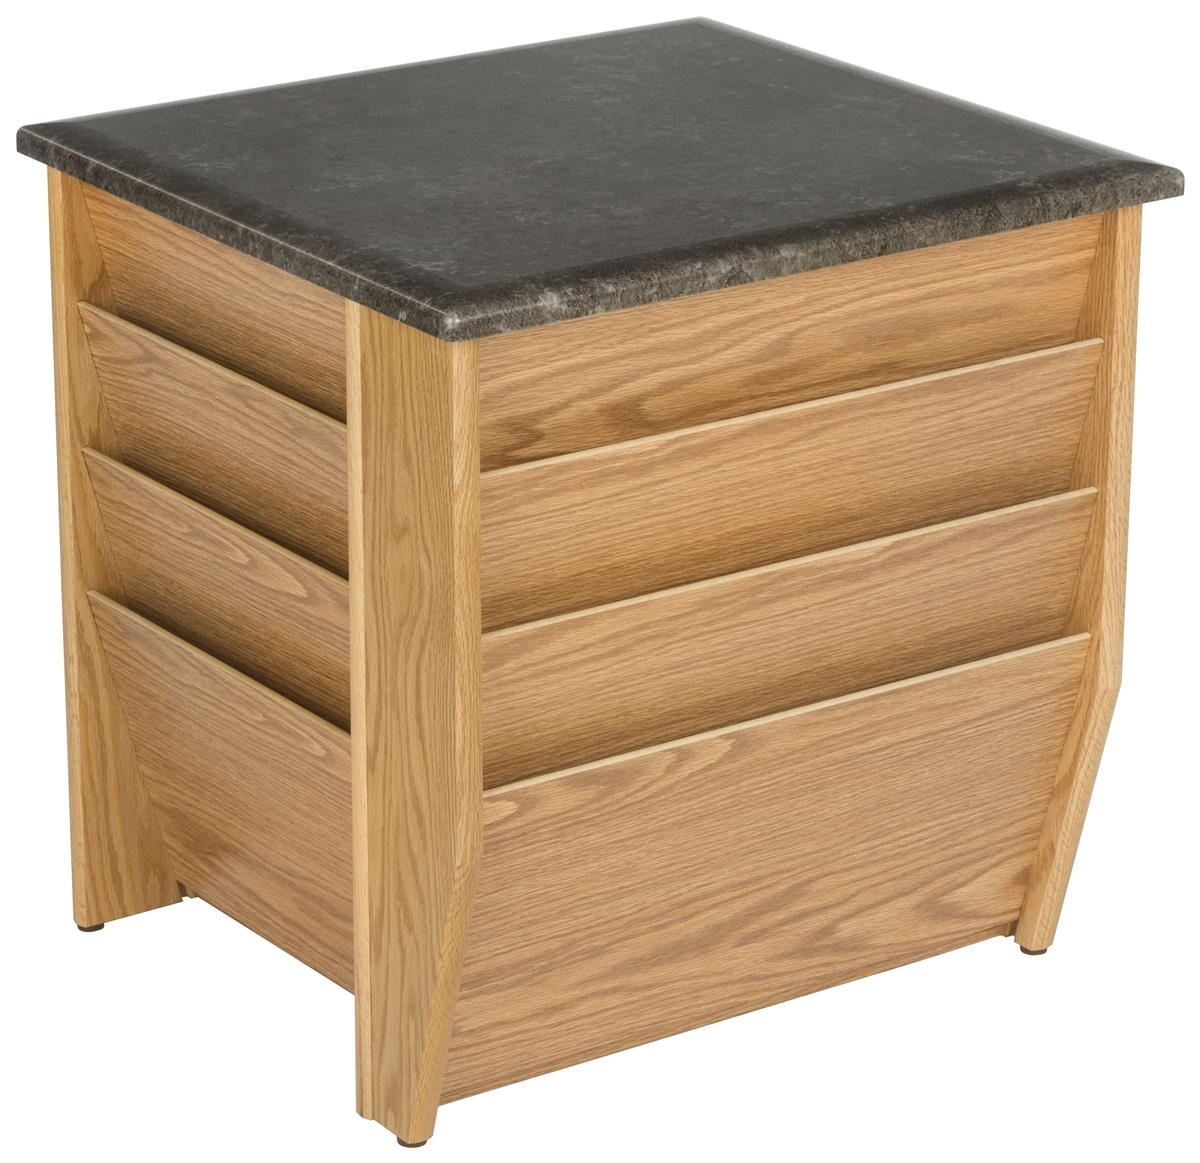 Wonderful image of Light Oak Magazine Rack End Table Black Top with 9 Pockets with #9A6C31 color and 1200x1163 pixels